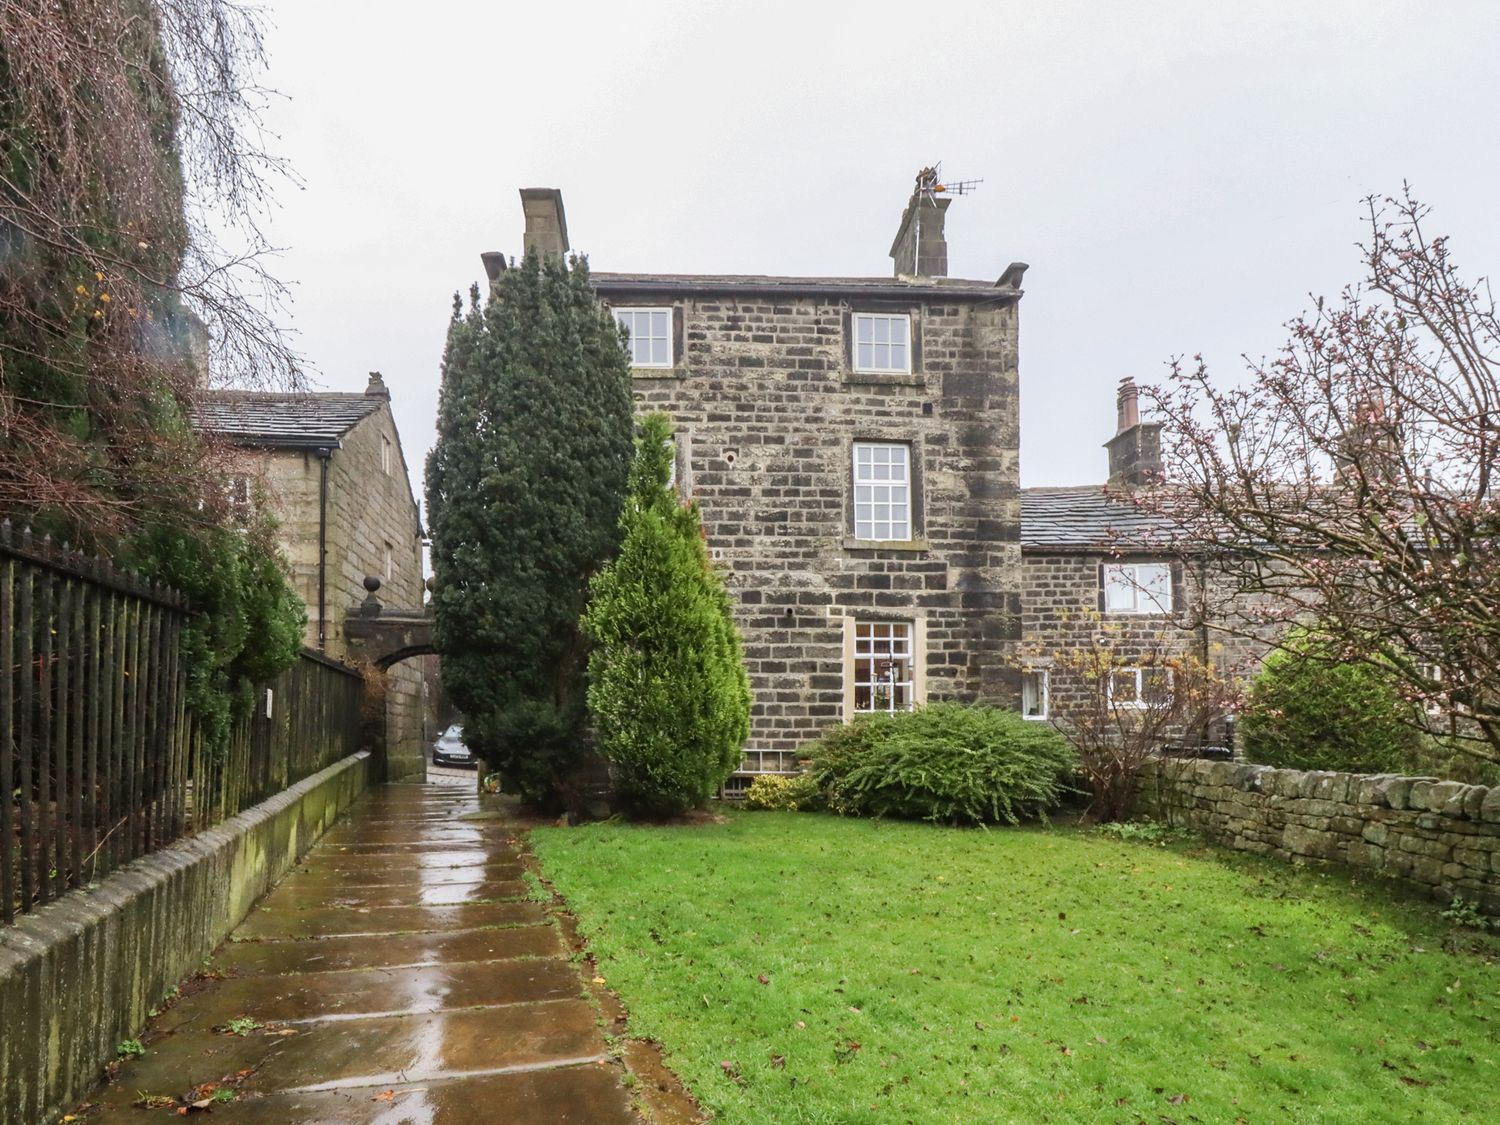 41 Towngate - Yorkshire Dales - 1057716 - photo 1